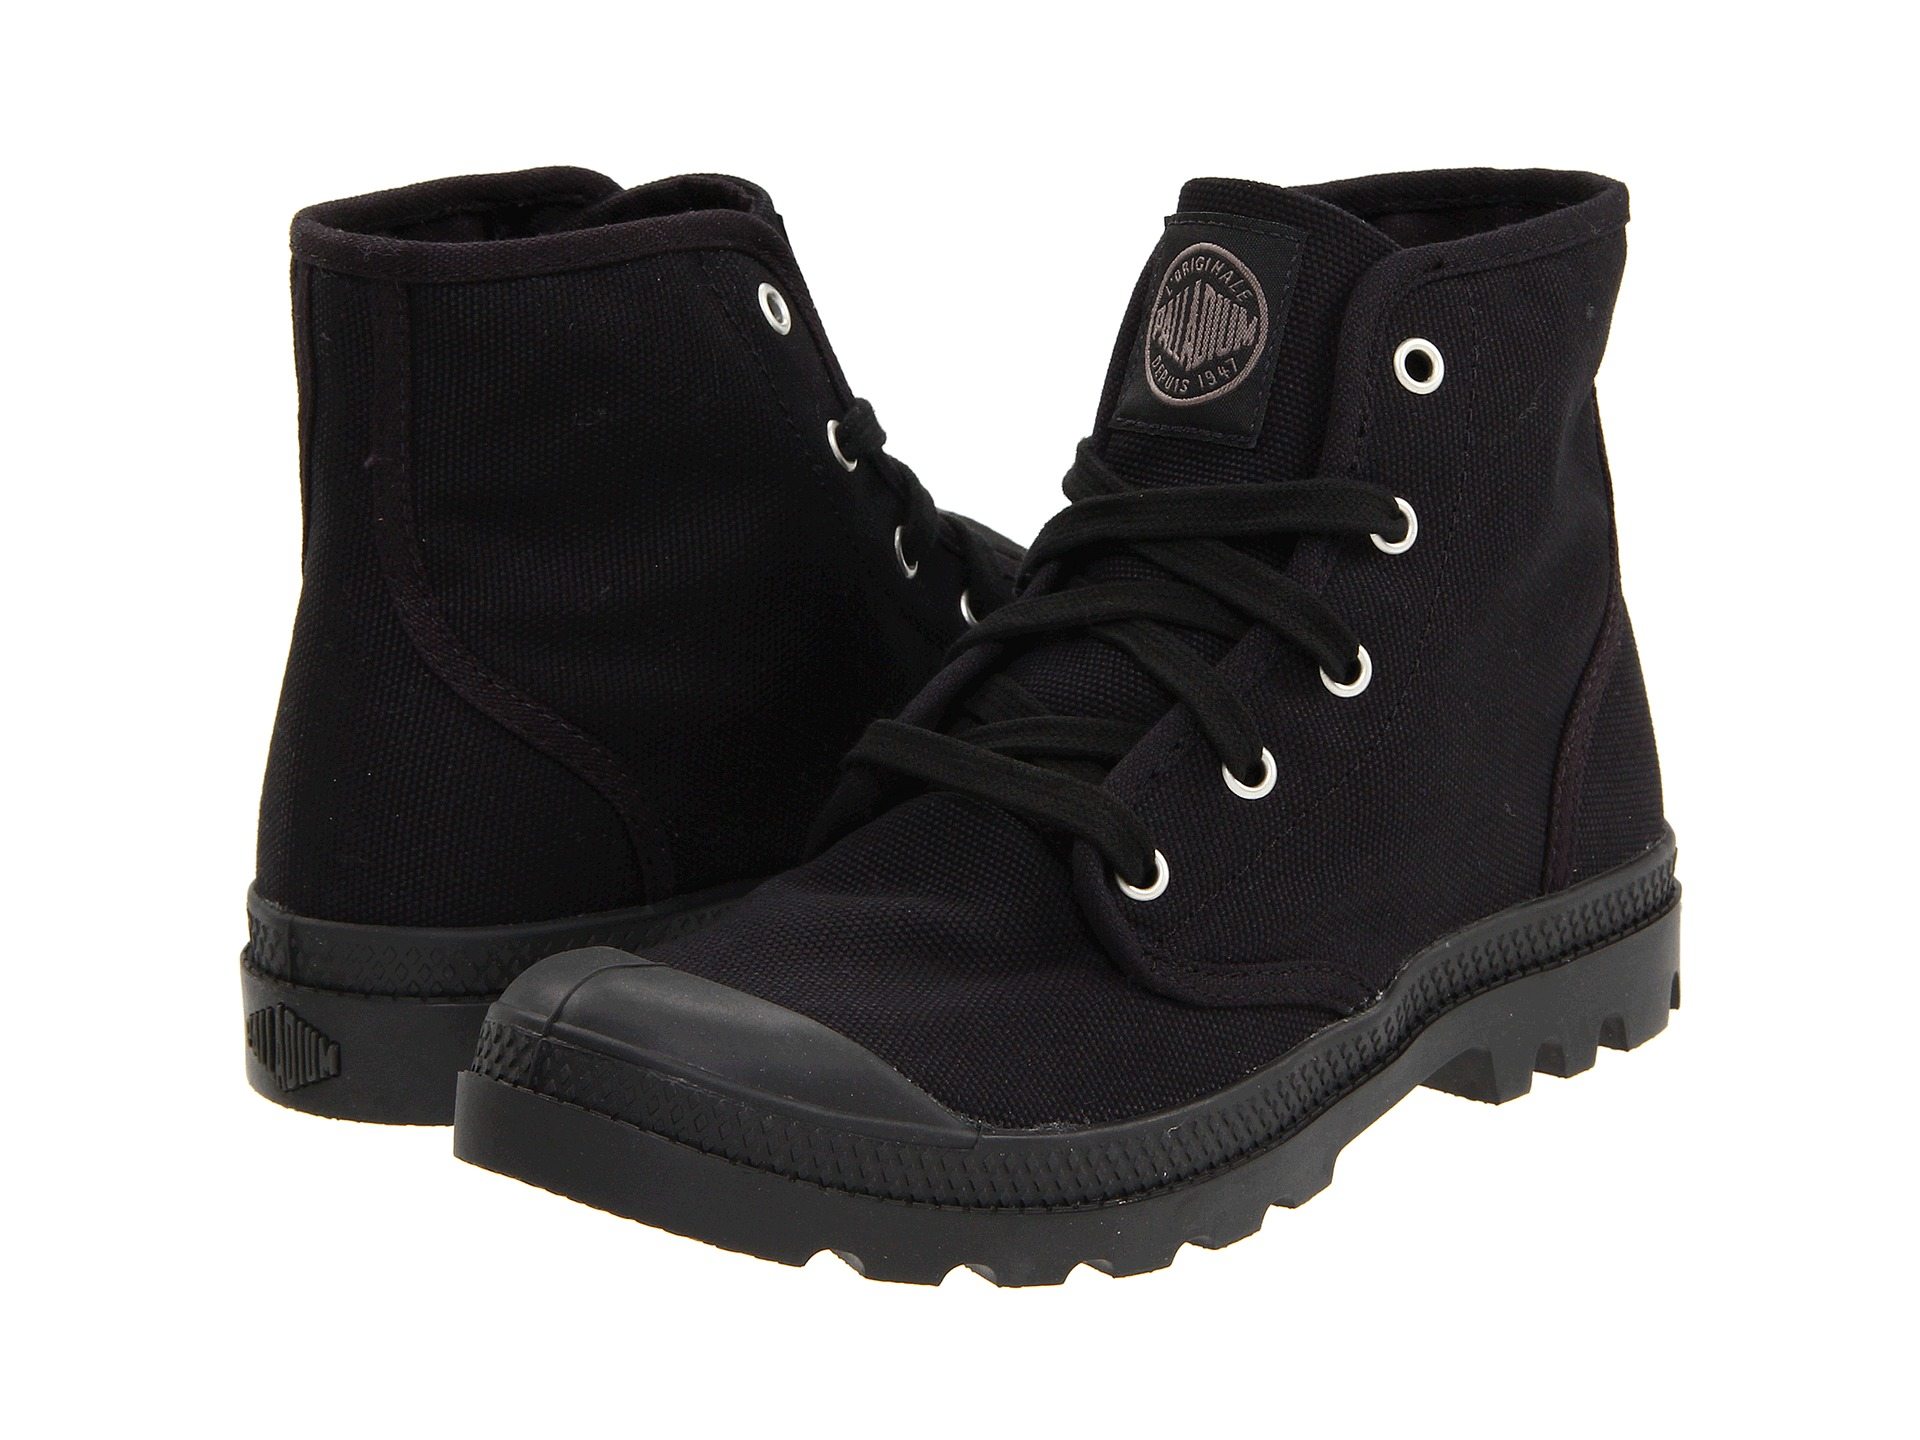 Palladium Pampa Hi - Zappos.com Free Shipping BOTH Ways